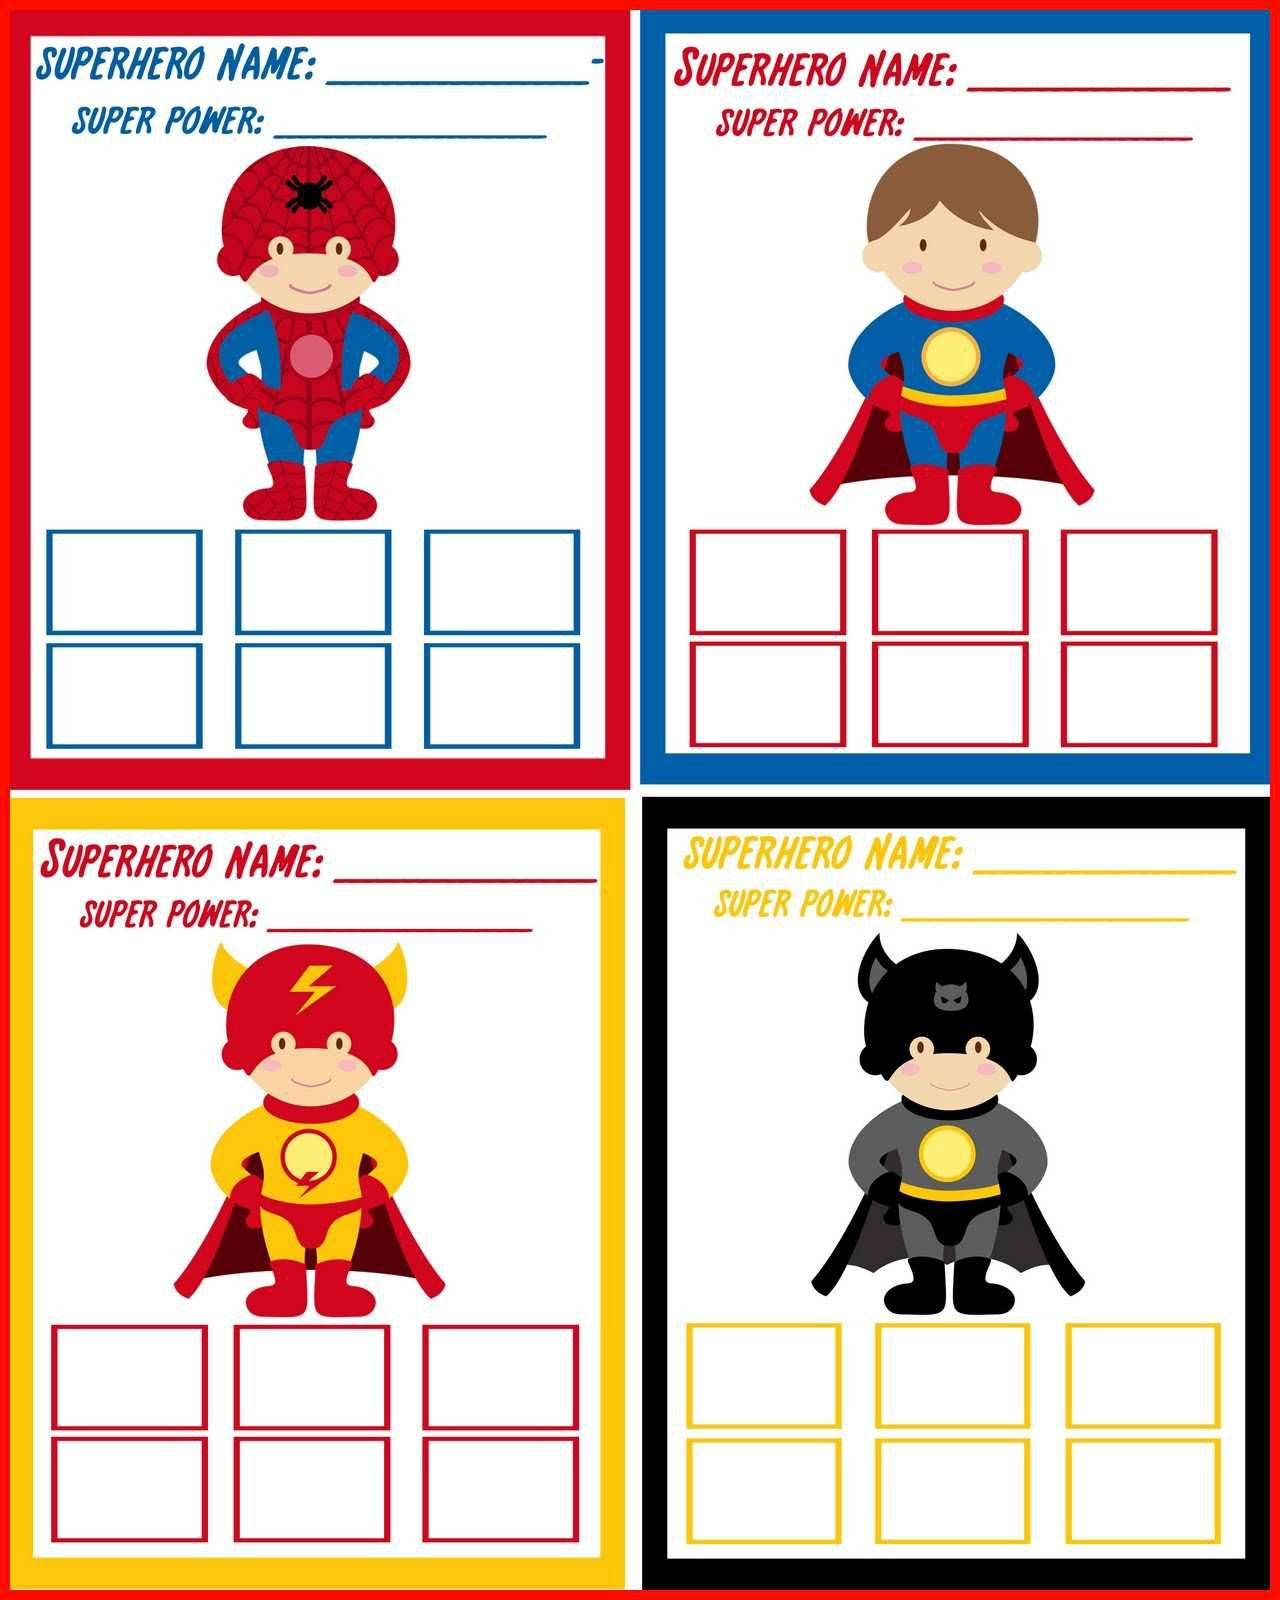 000 Phenomenal Superhero Invitation Template Free High Def  Newspaper Party Birthday InviteFull